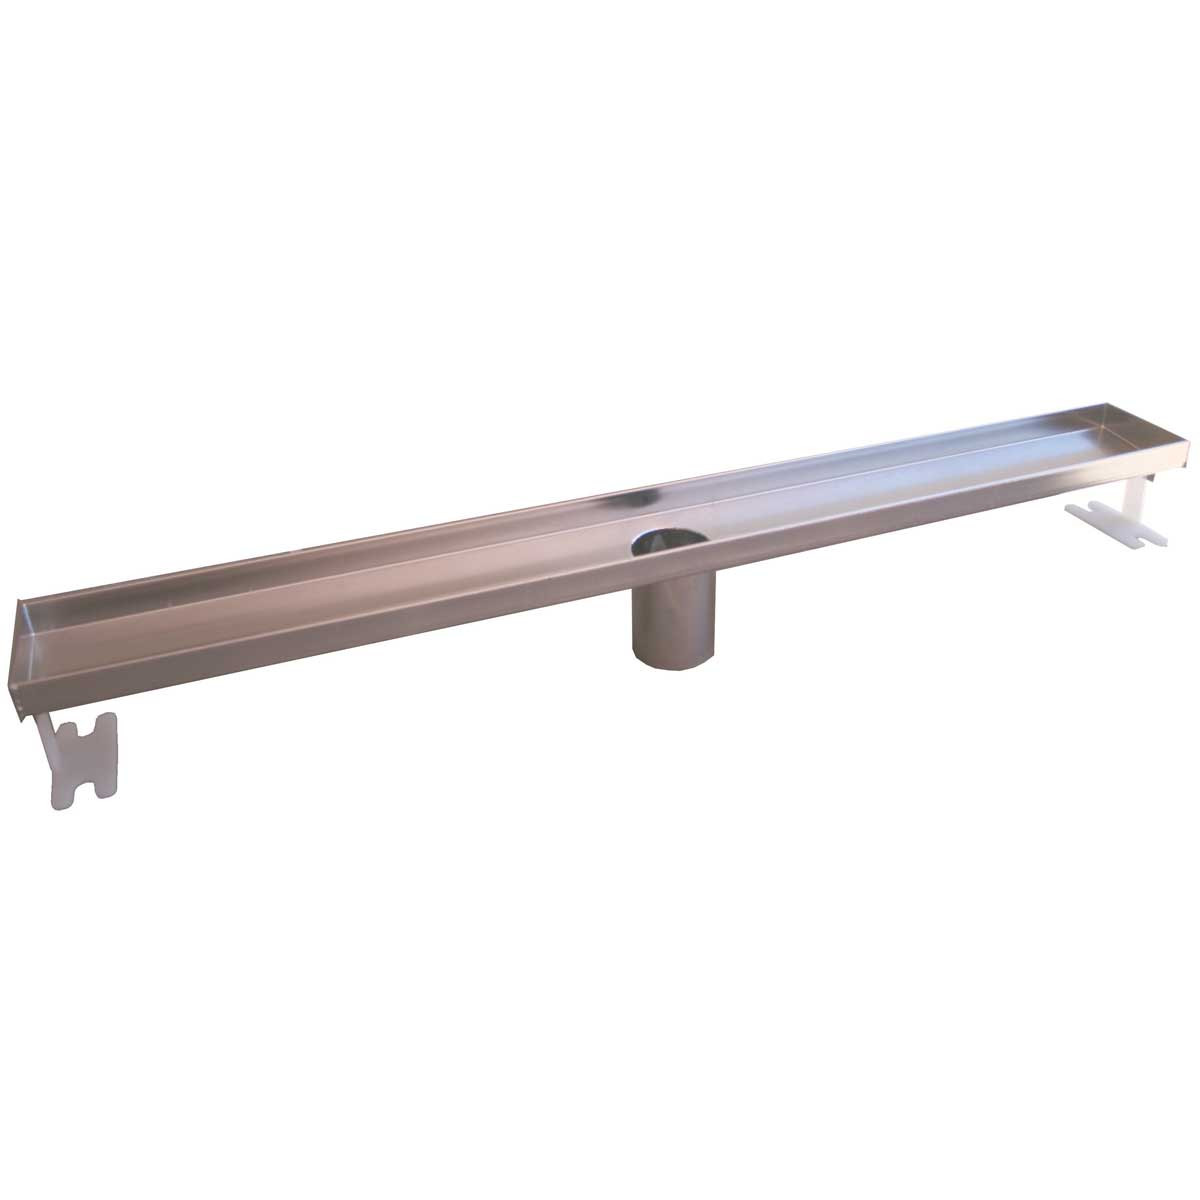 37420-93861 Linear Stainless Steel Shower Channels & Grates